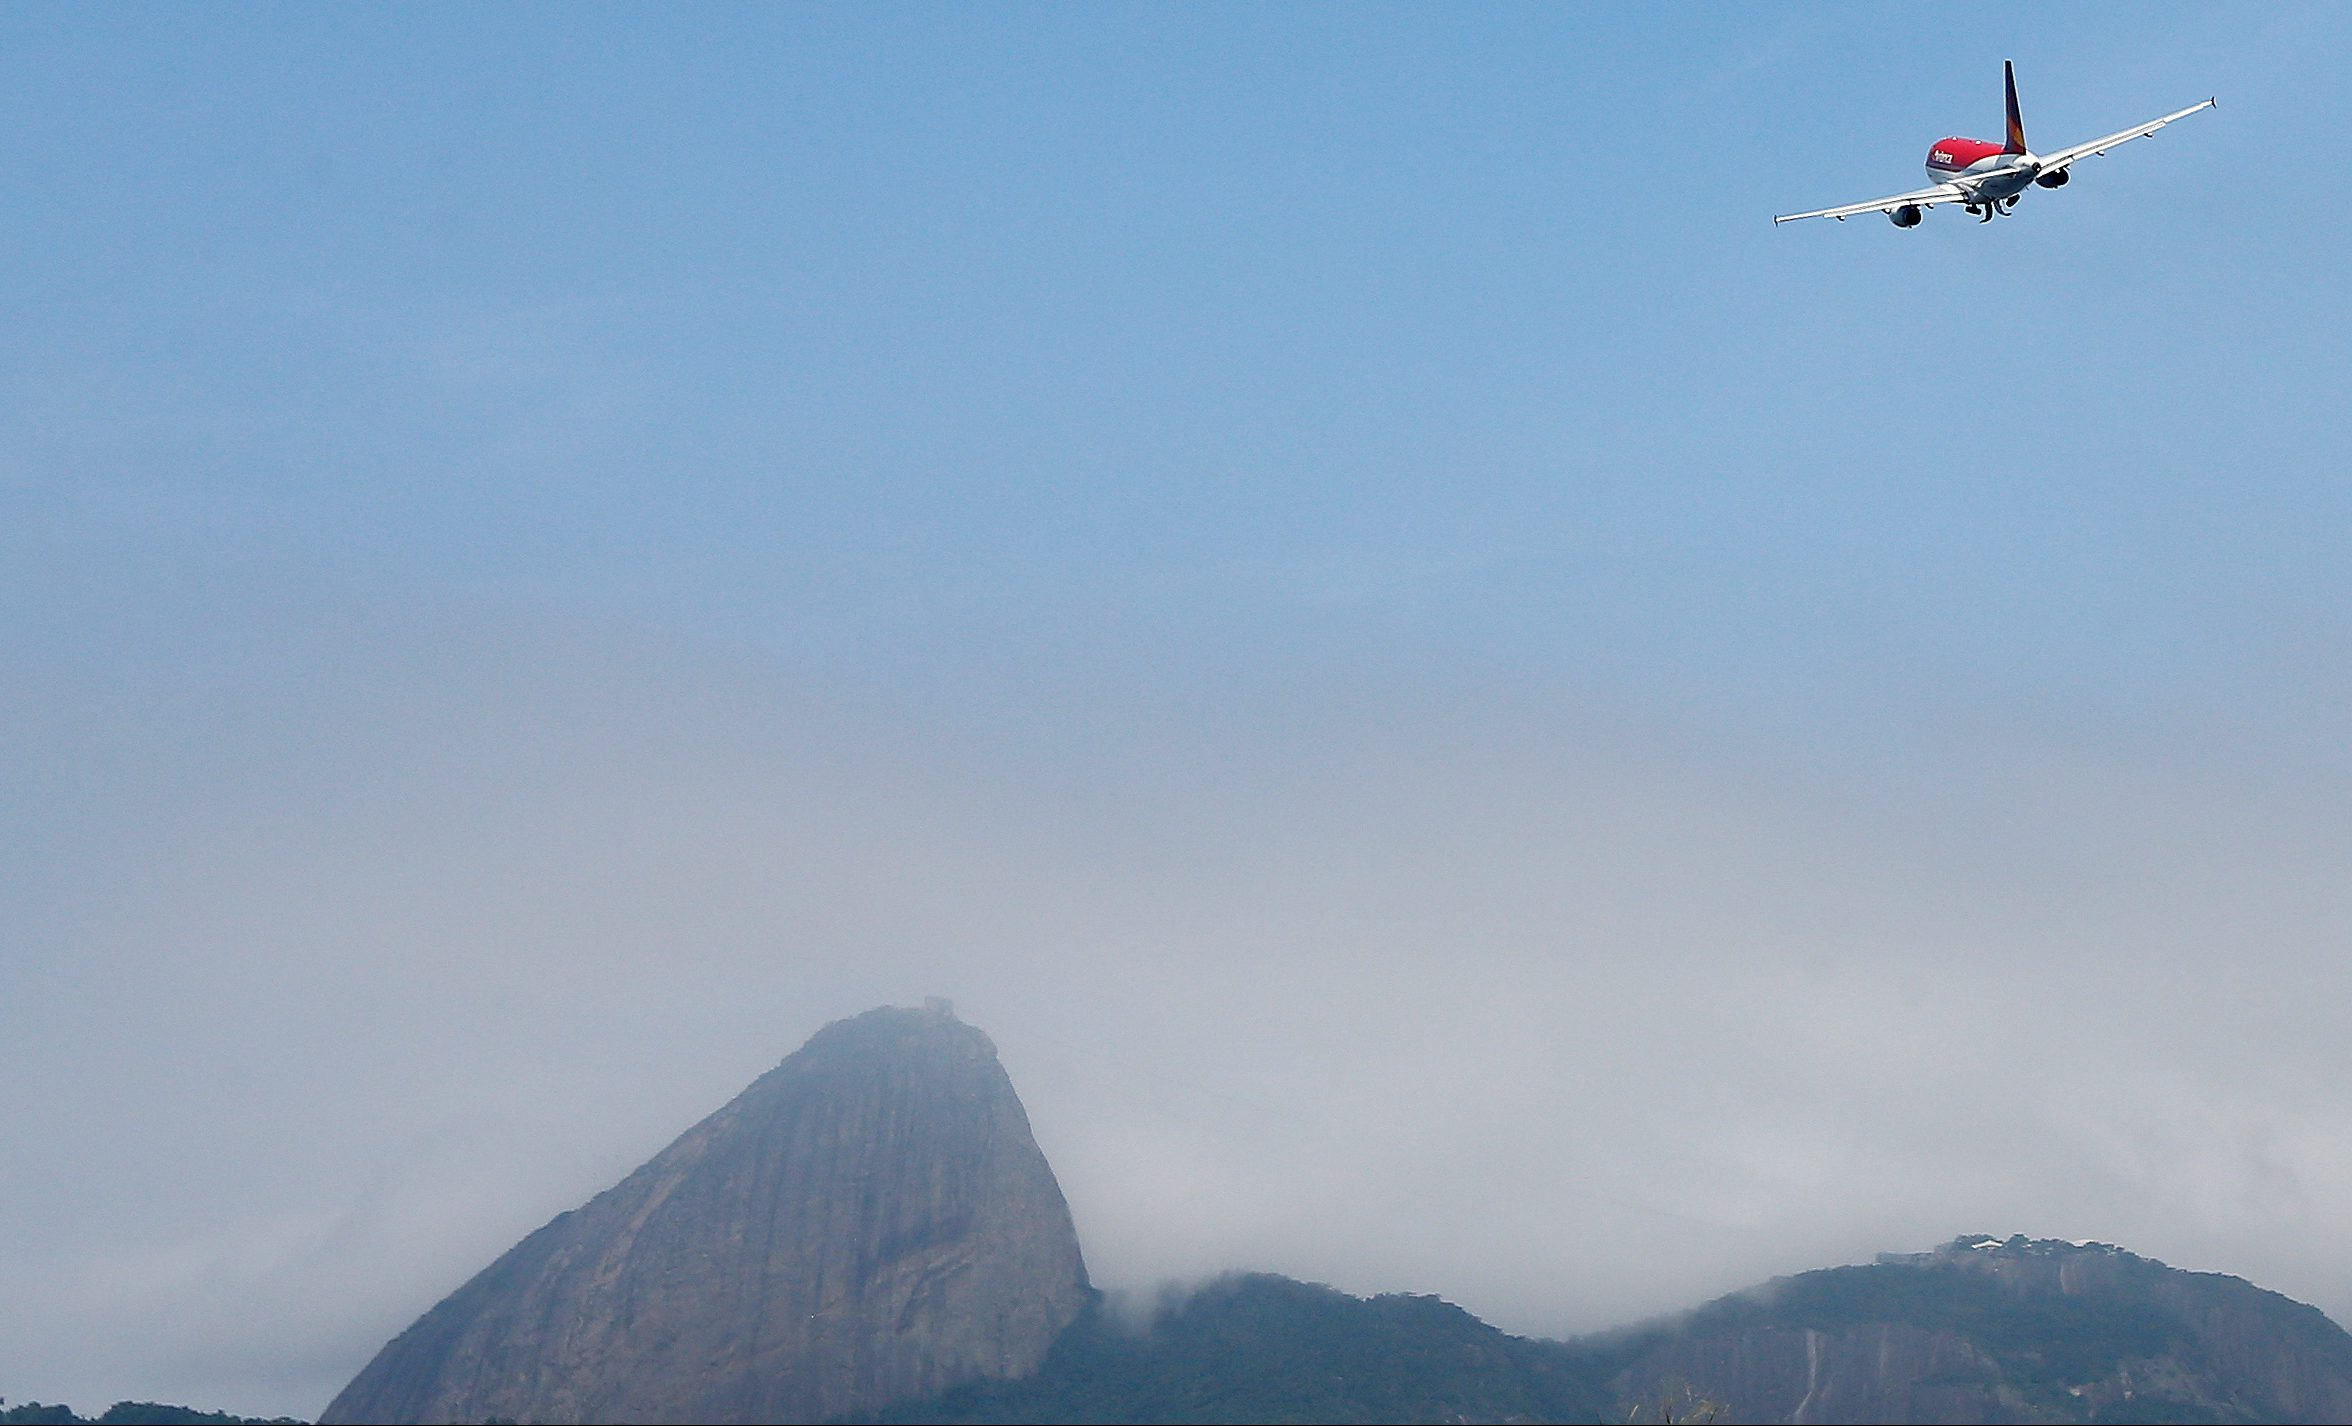 An airplane of Avianca Holdings SA takes off from Santos Dumont Airport in Rio de Janeiro